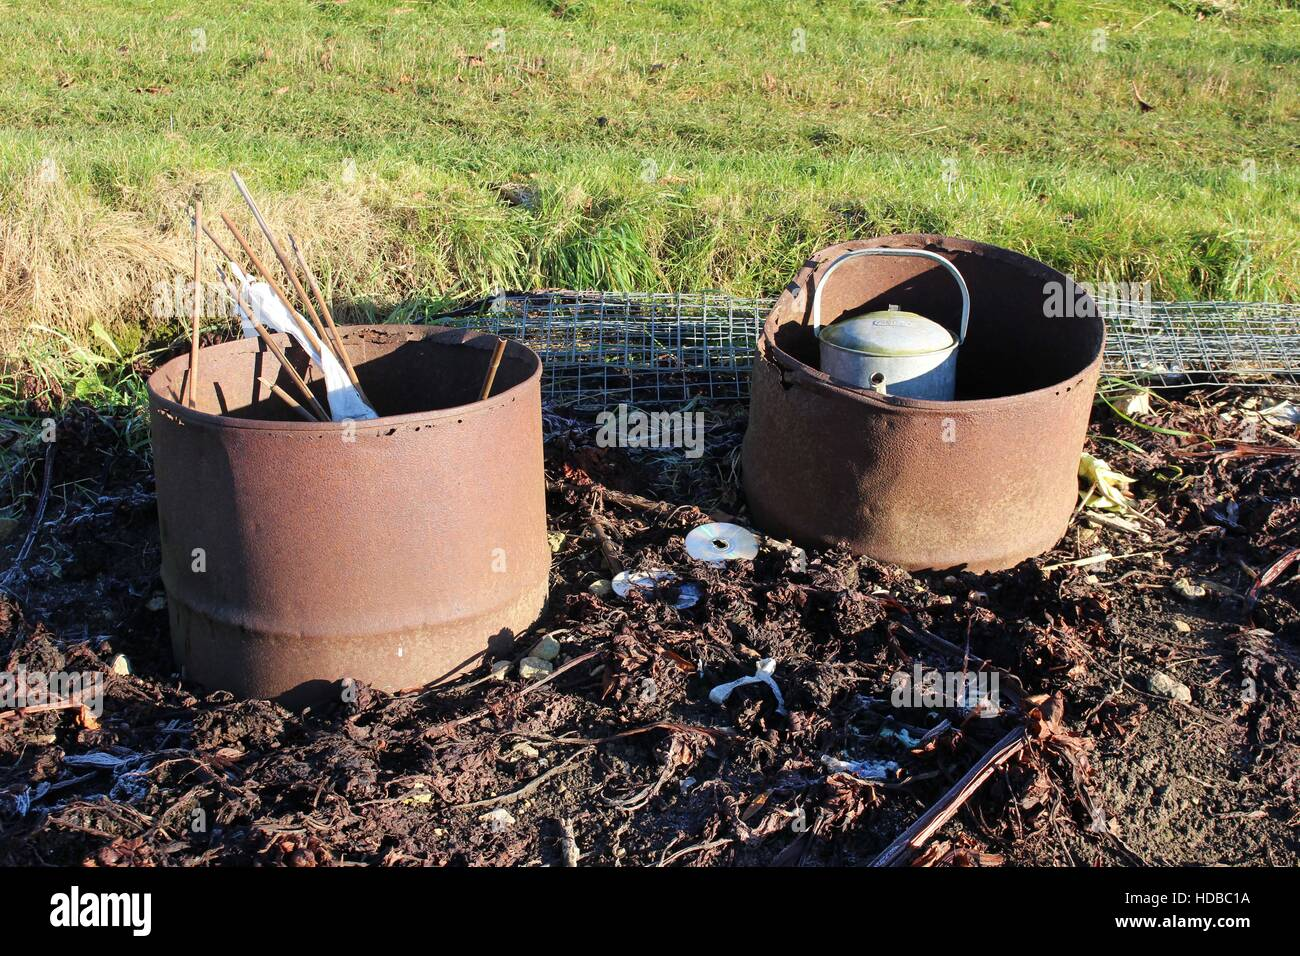 Winter allotment rusty metal barrels wire watering can cane bamboo canes mess messy gardening - Stock Image